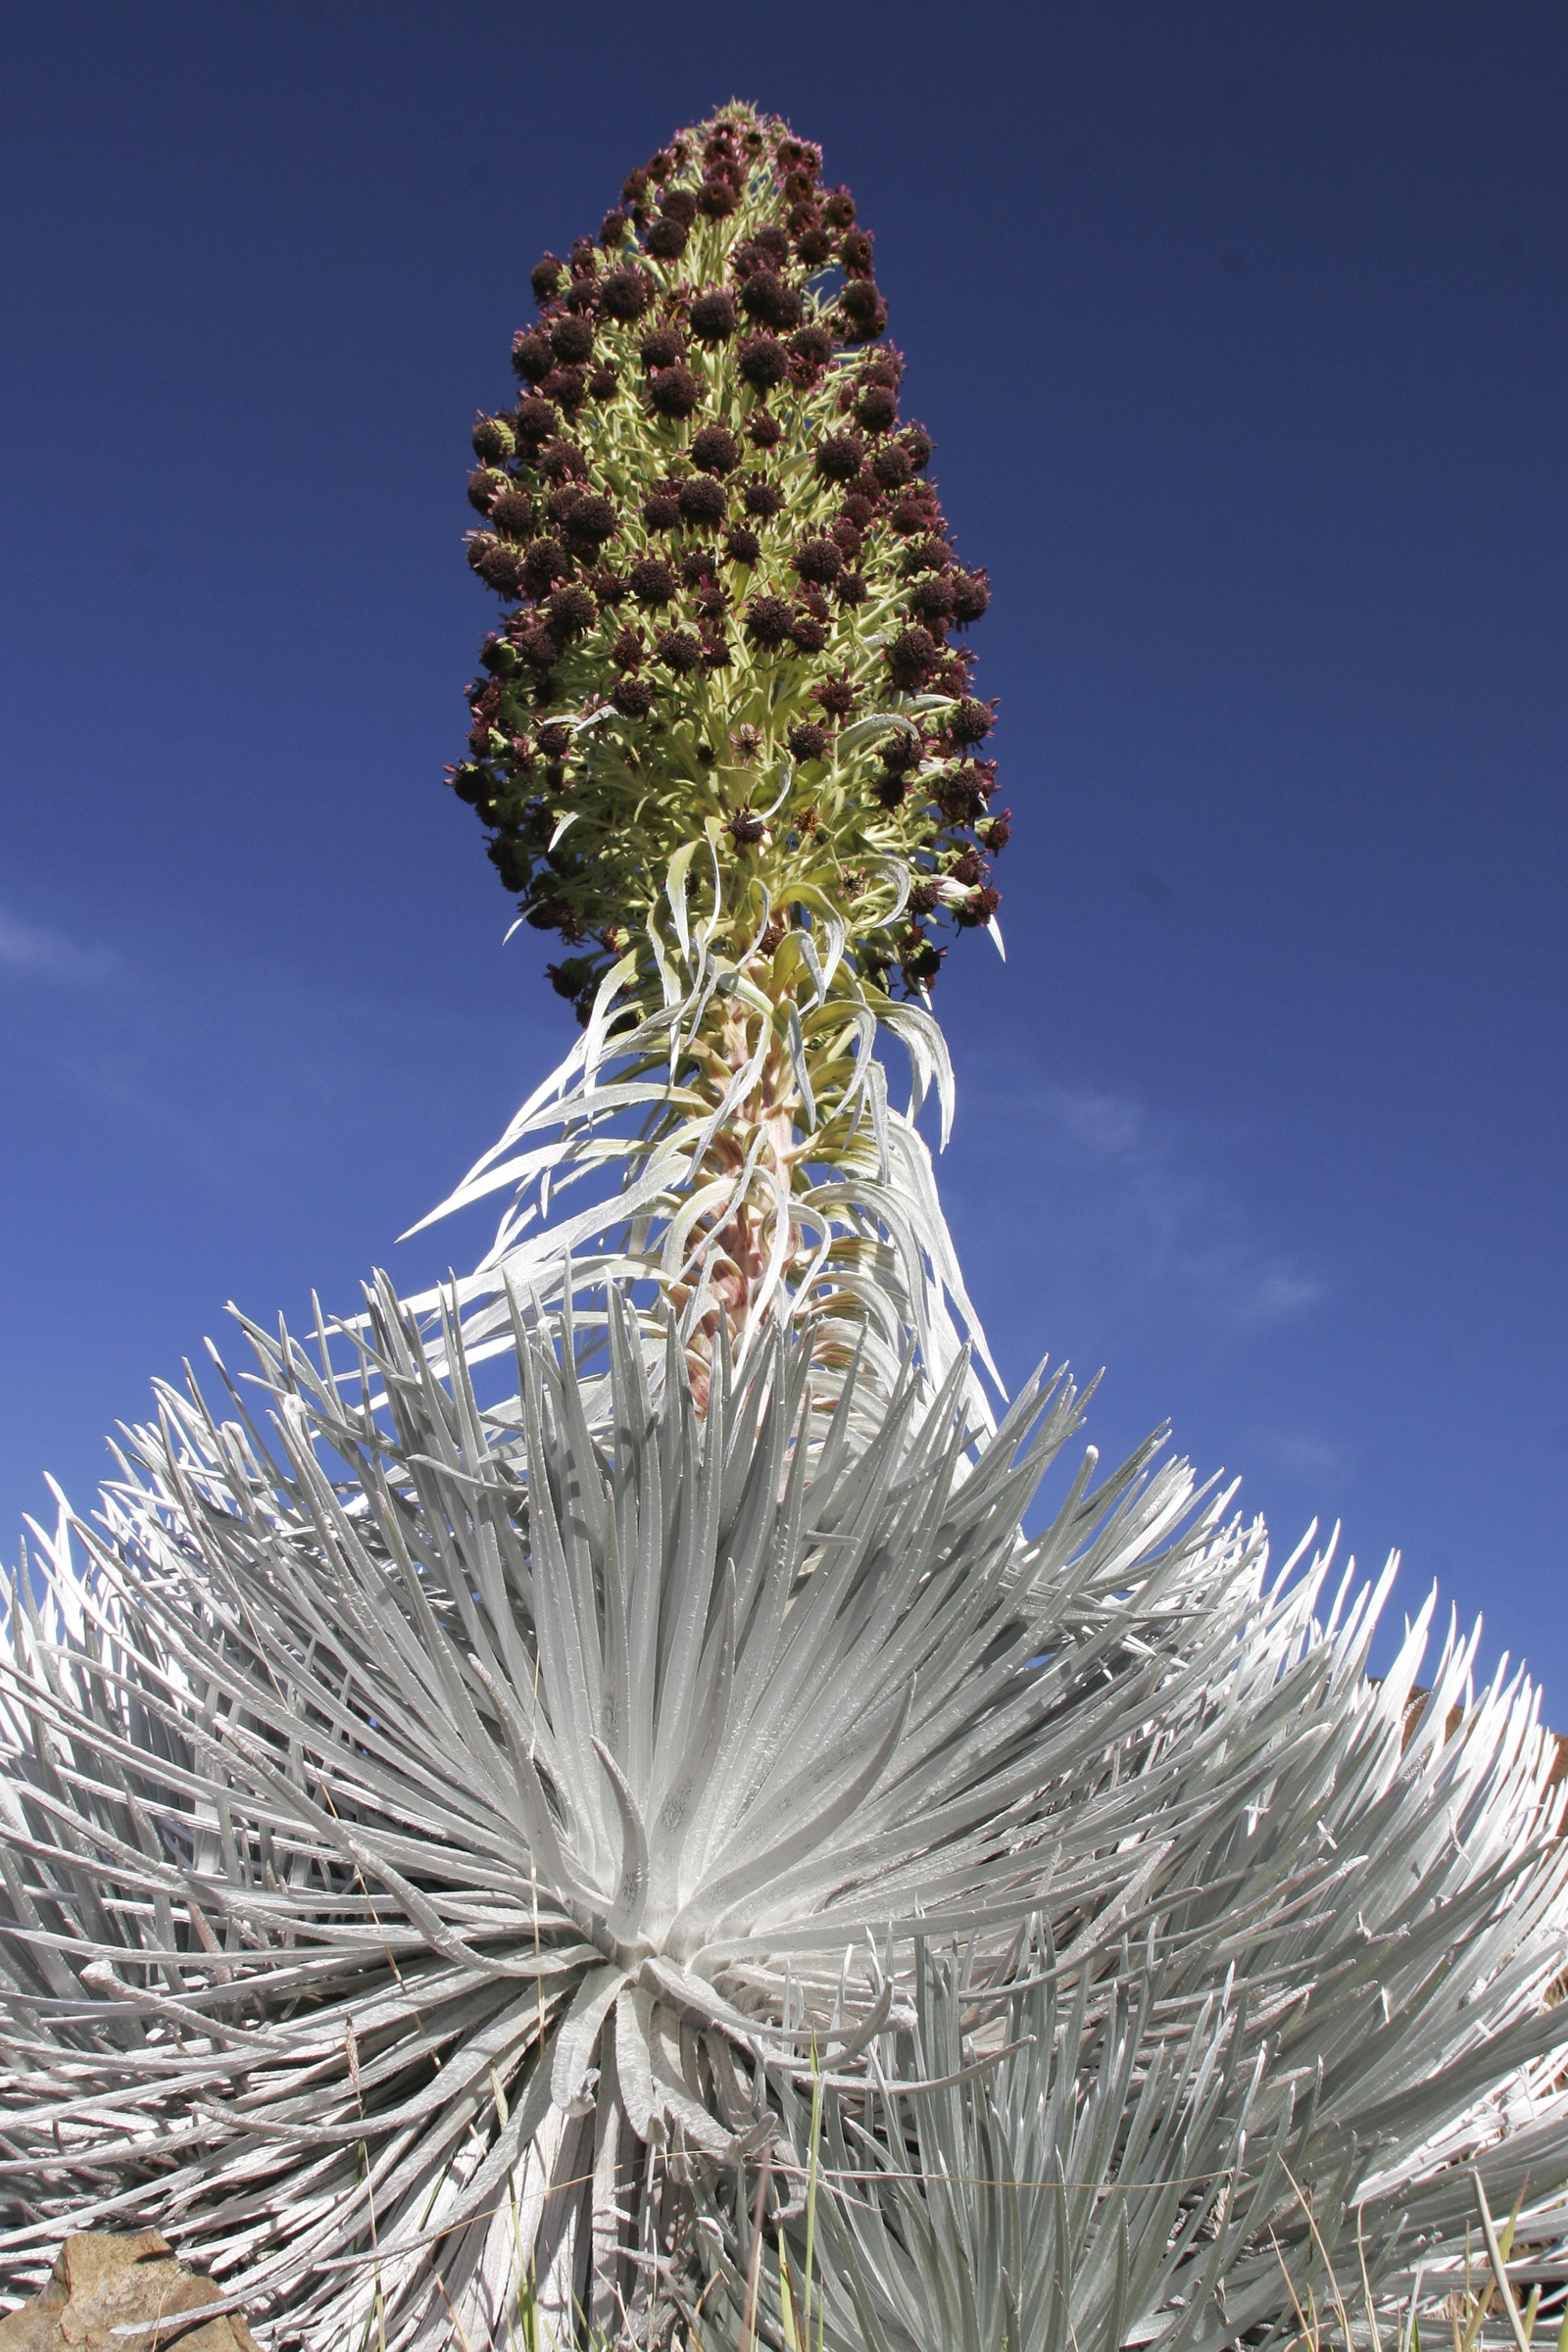 The 'Ahinahina or Haleakalā silversword (Argyroxiphium sandwicense subsp. macrocephalum) is a rare plant found in the Kīpahulu Biological Reserve. Staff from Haleakalā National Park collect and propagate silversword seeds to bolster wild populations. Photograph by Jack Jeffrey